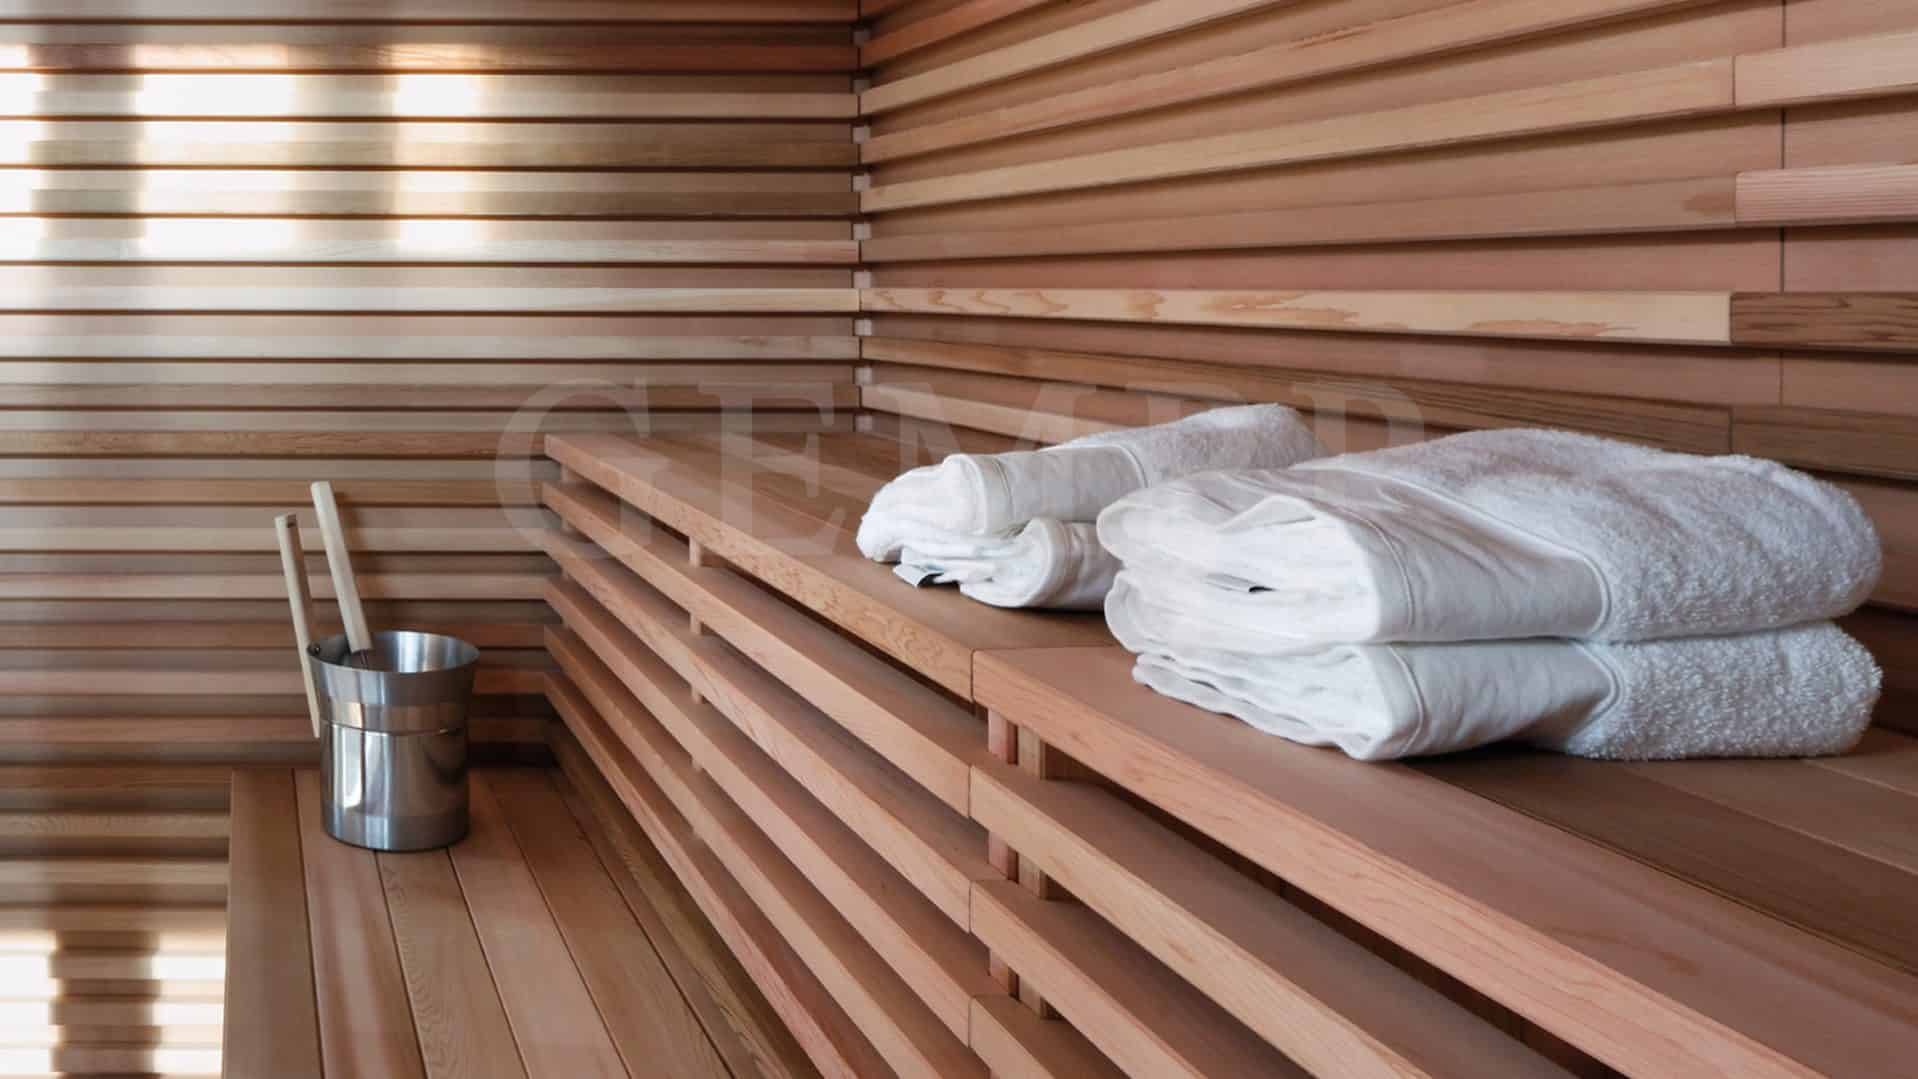 sauna im garten good sauna und kaminzimmer im garten with. Black Bedroom Furniture Sets. Home Design Ideas